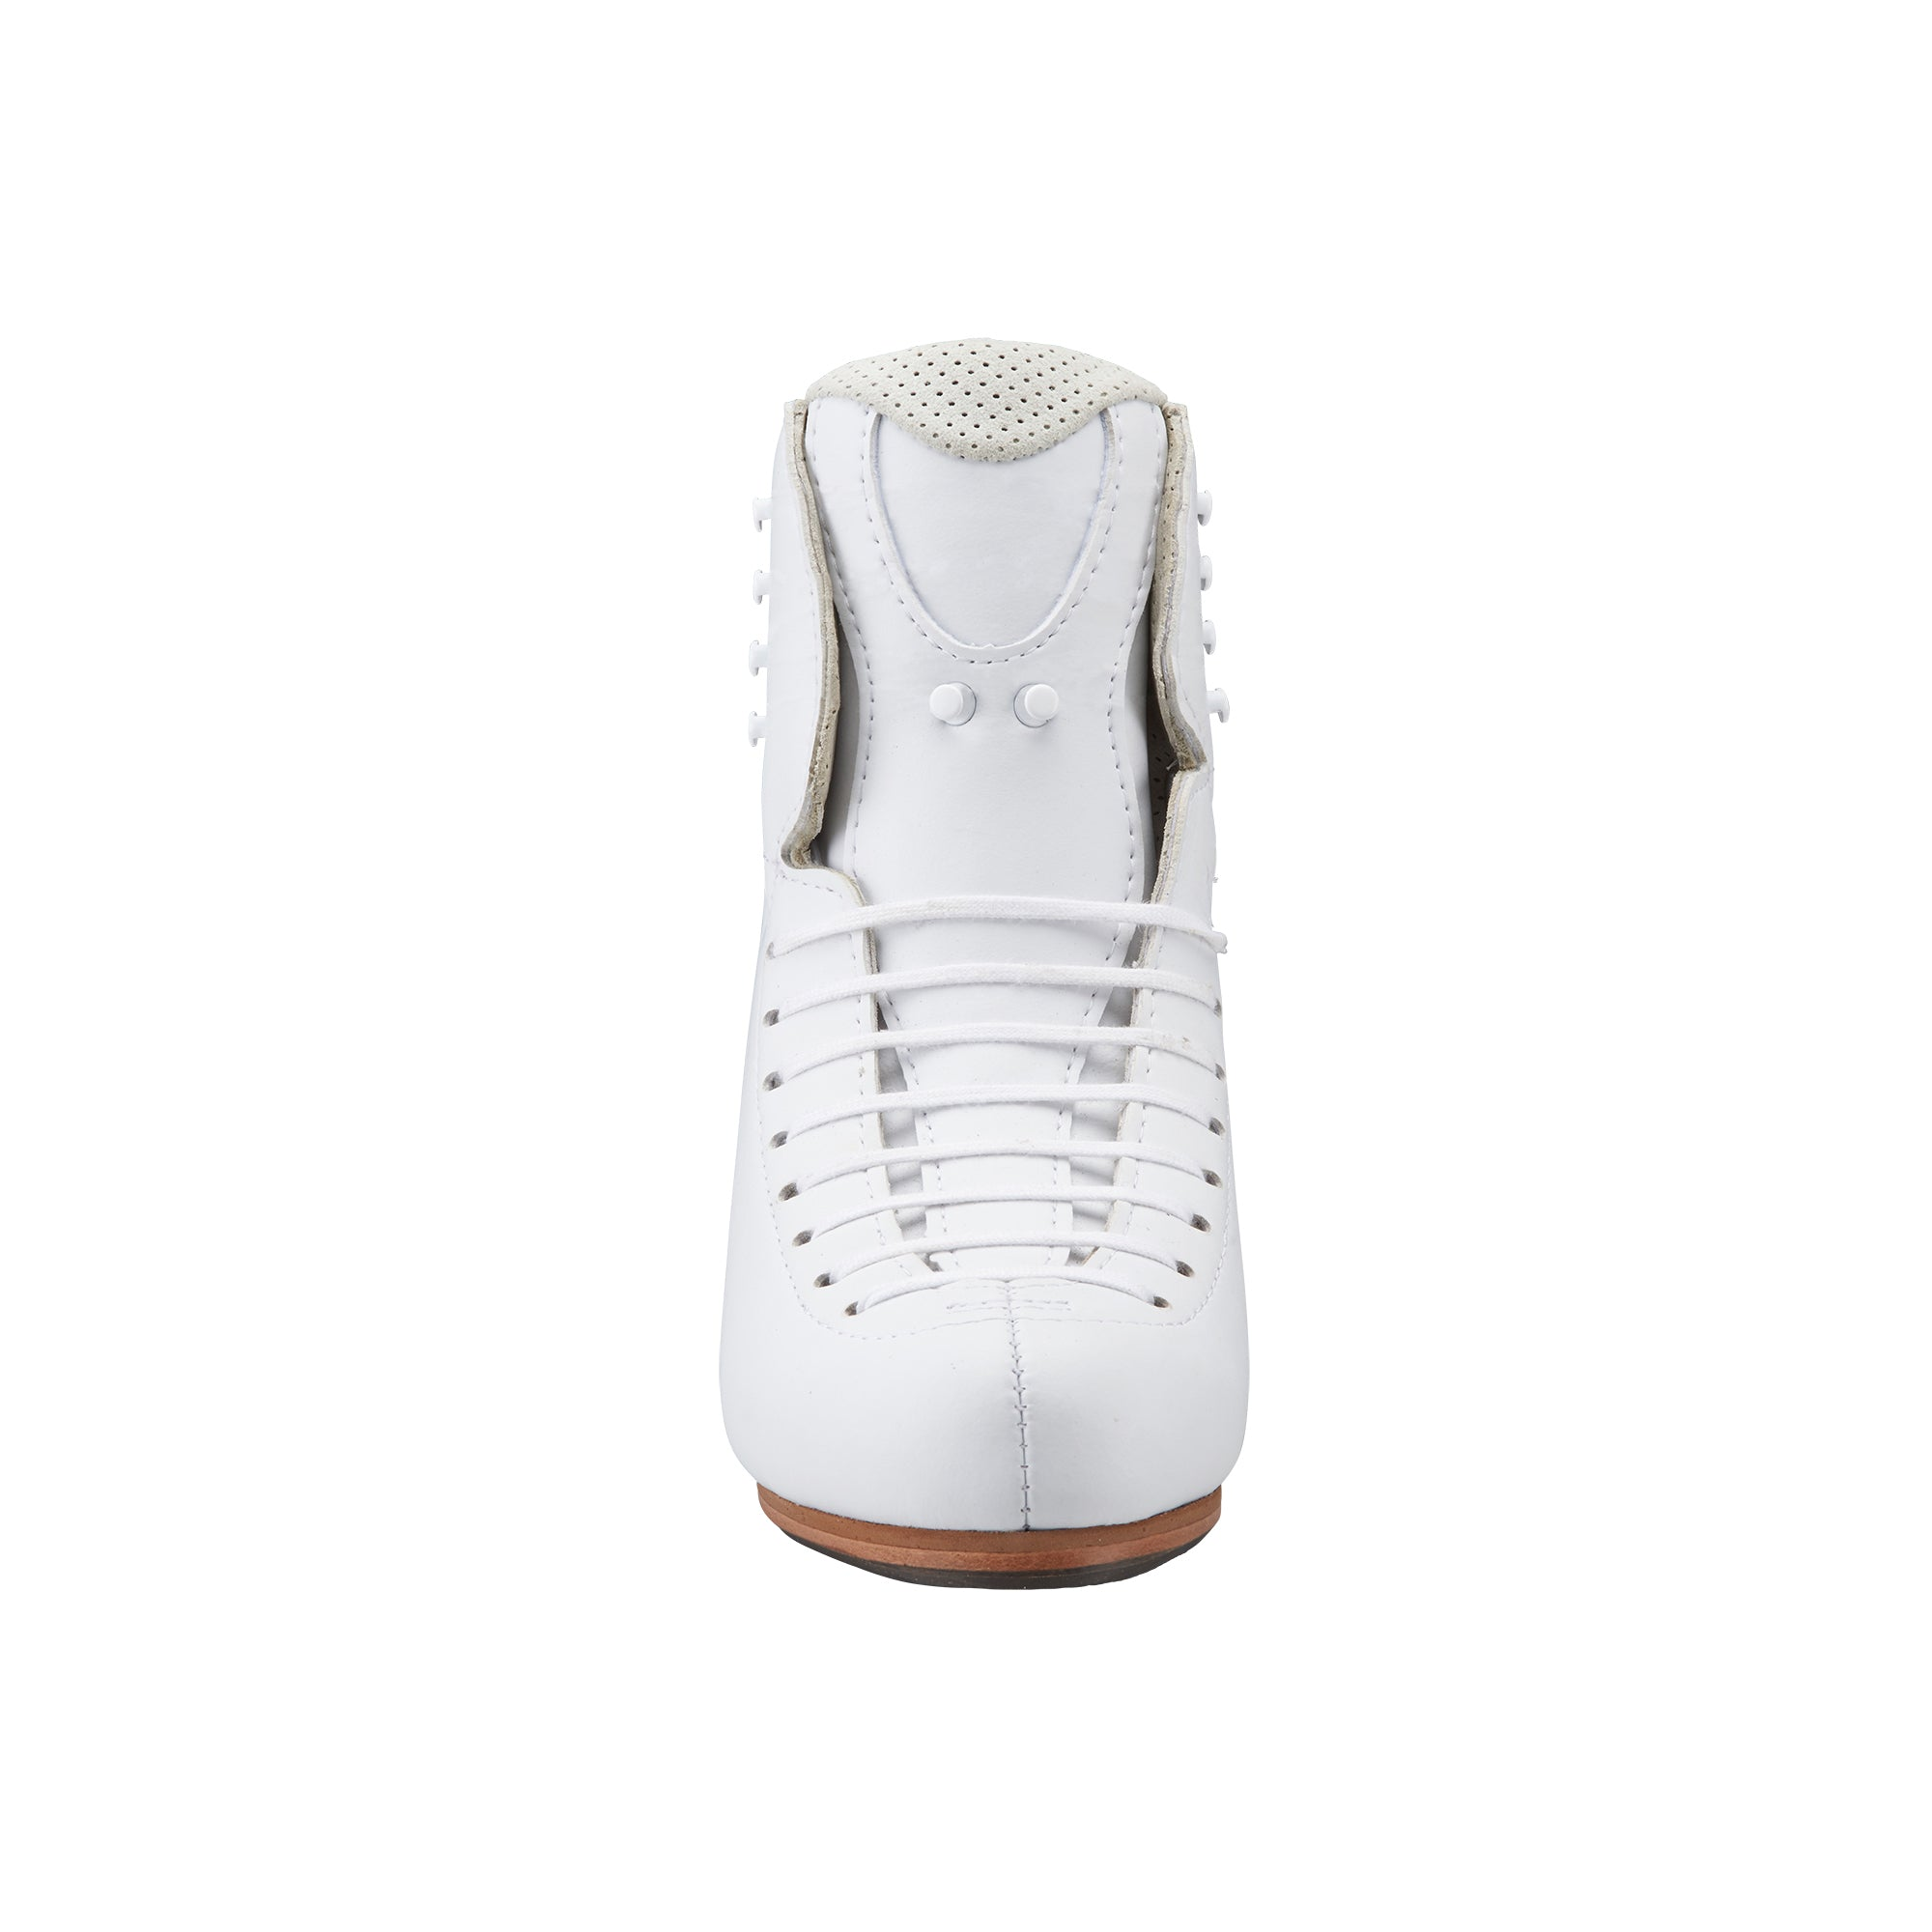 Jackson Supreme 5500 White Figure Skate Boot